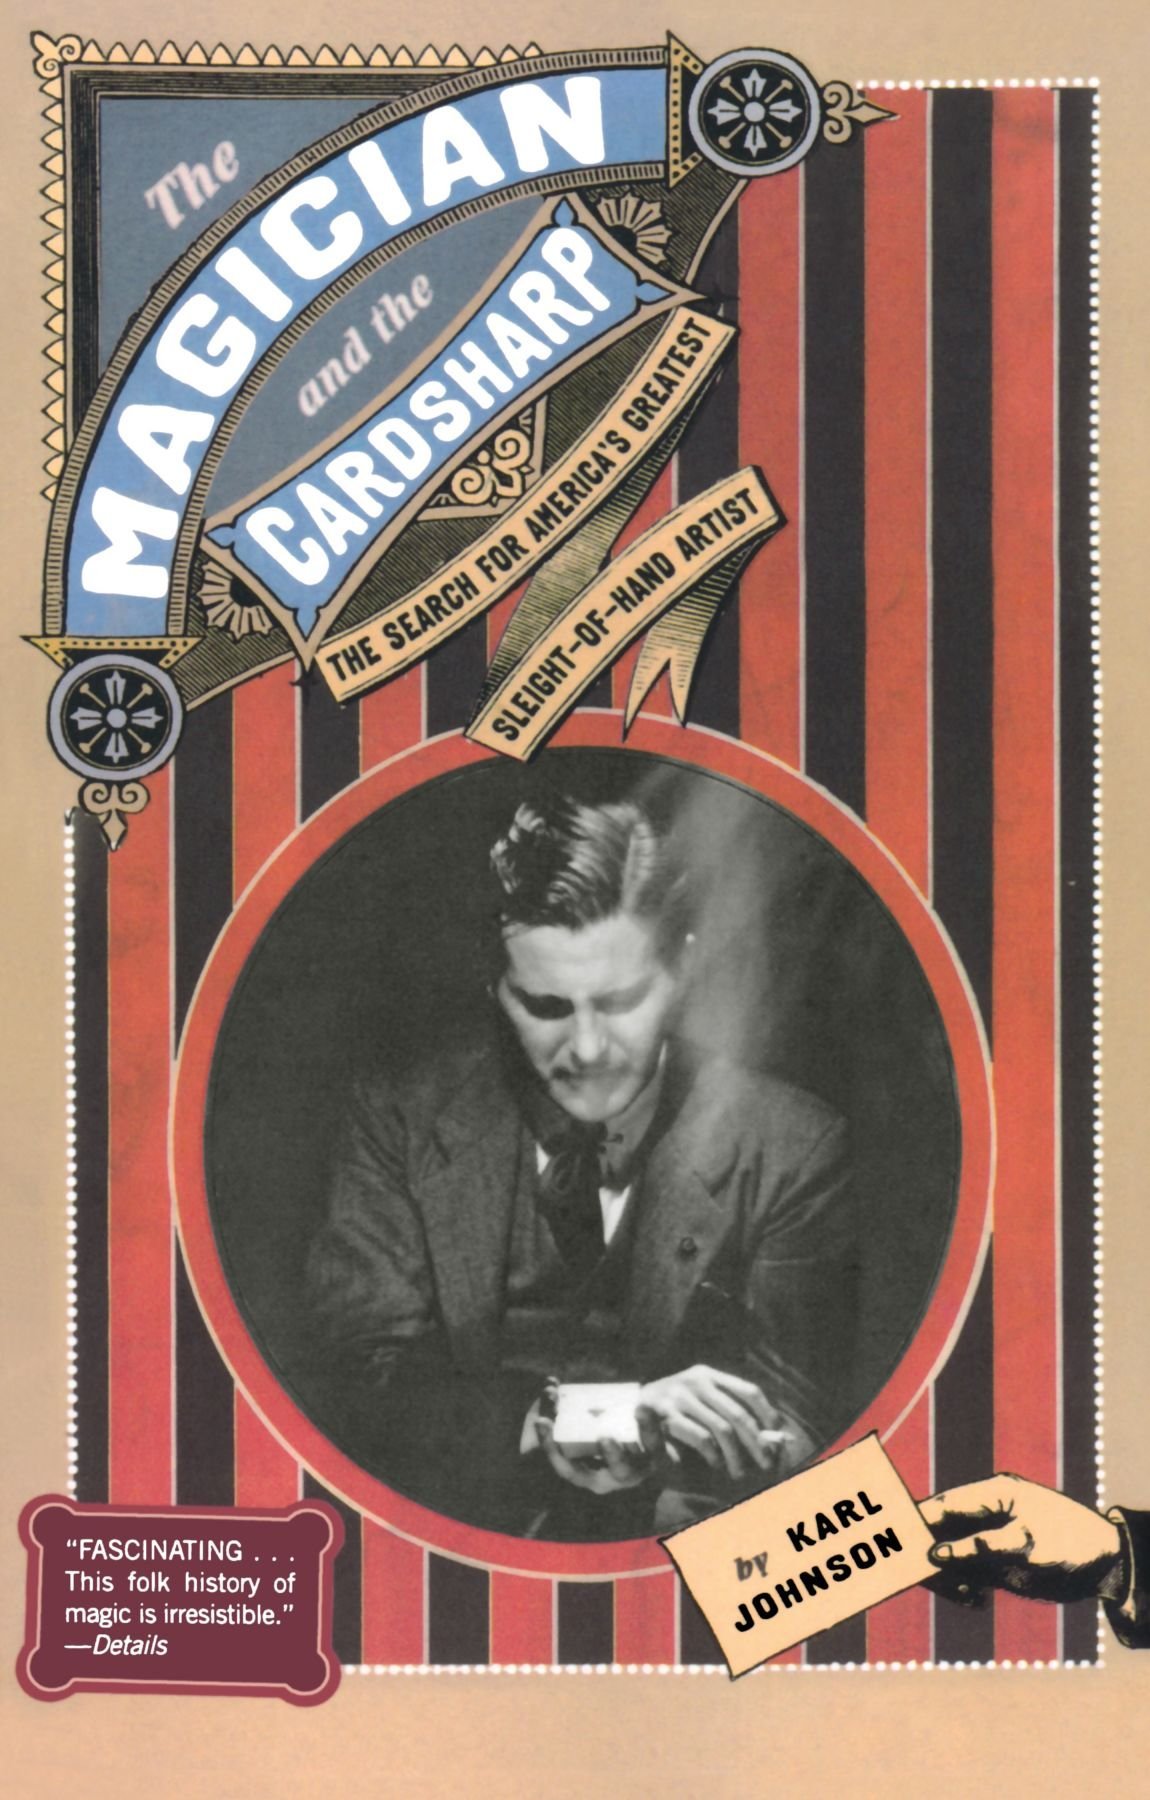 The Magician and the Cardsharp: The Search for America's Greatest Sleight-of-Hand Artist